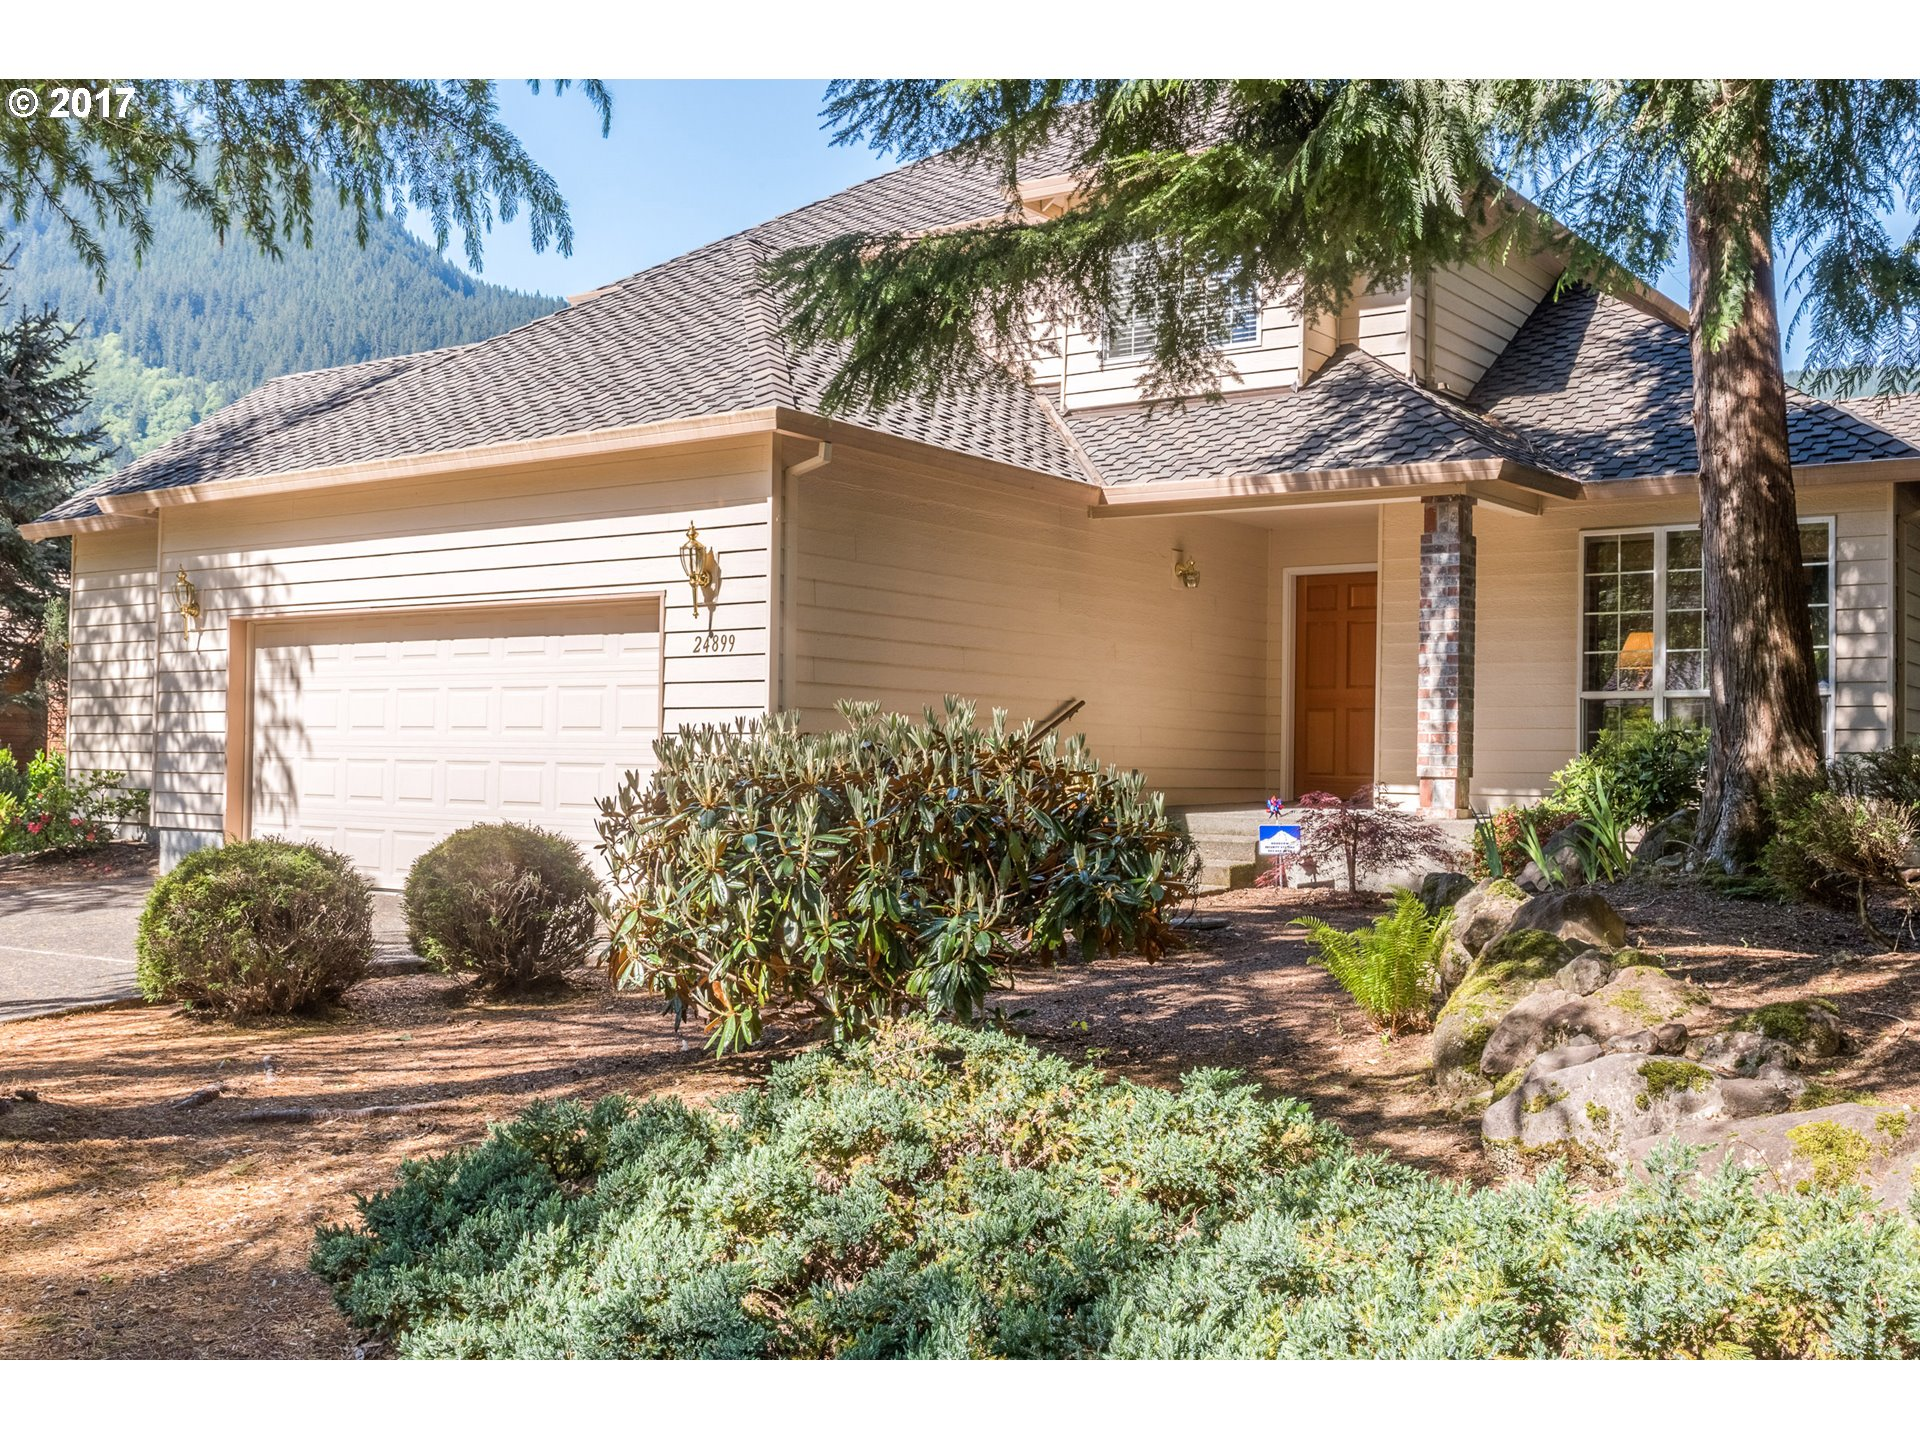 24899 E BRIGHT AVE Mt Hood  Home Listings - Merit Properties Mt Hood Real Estate